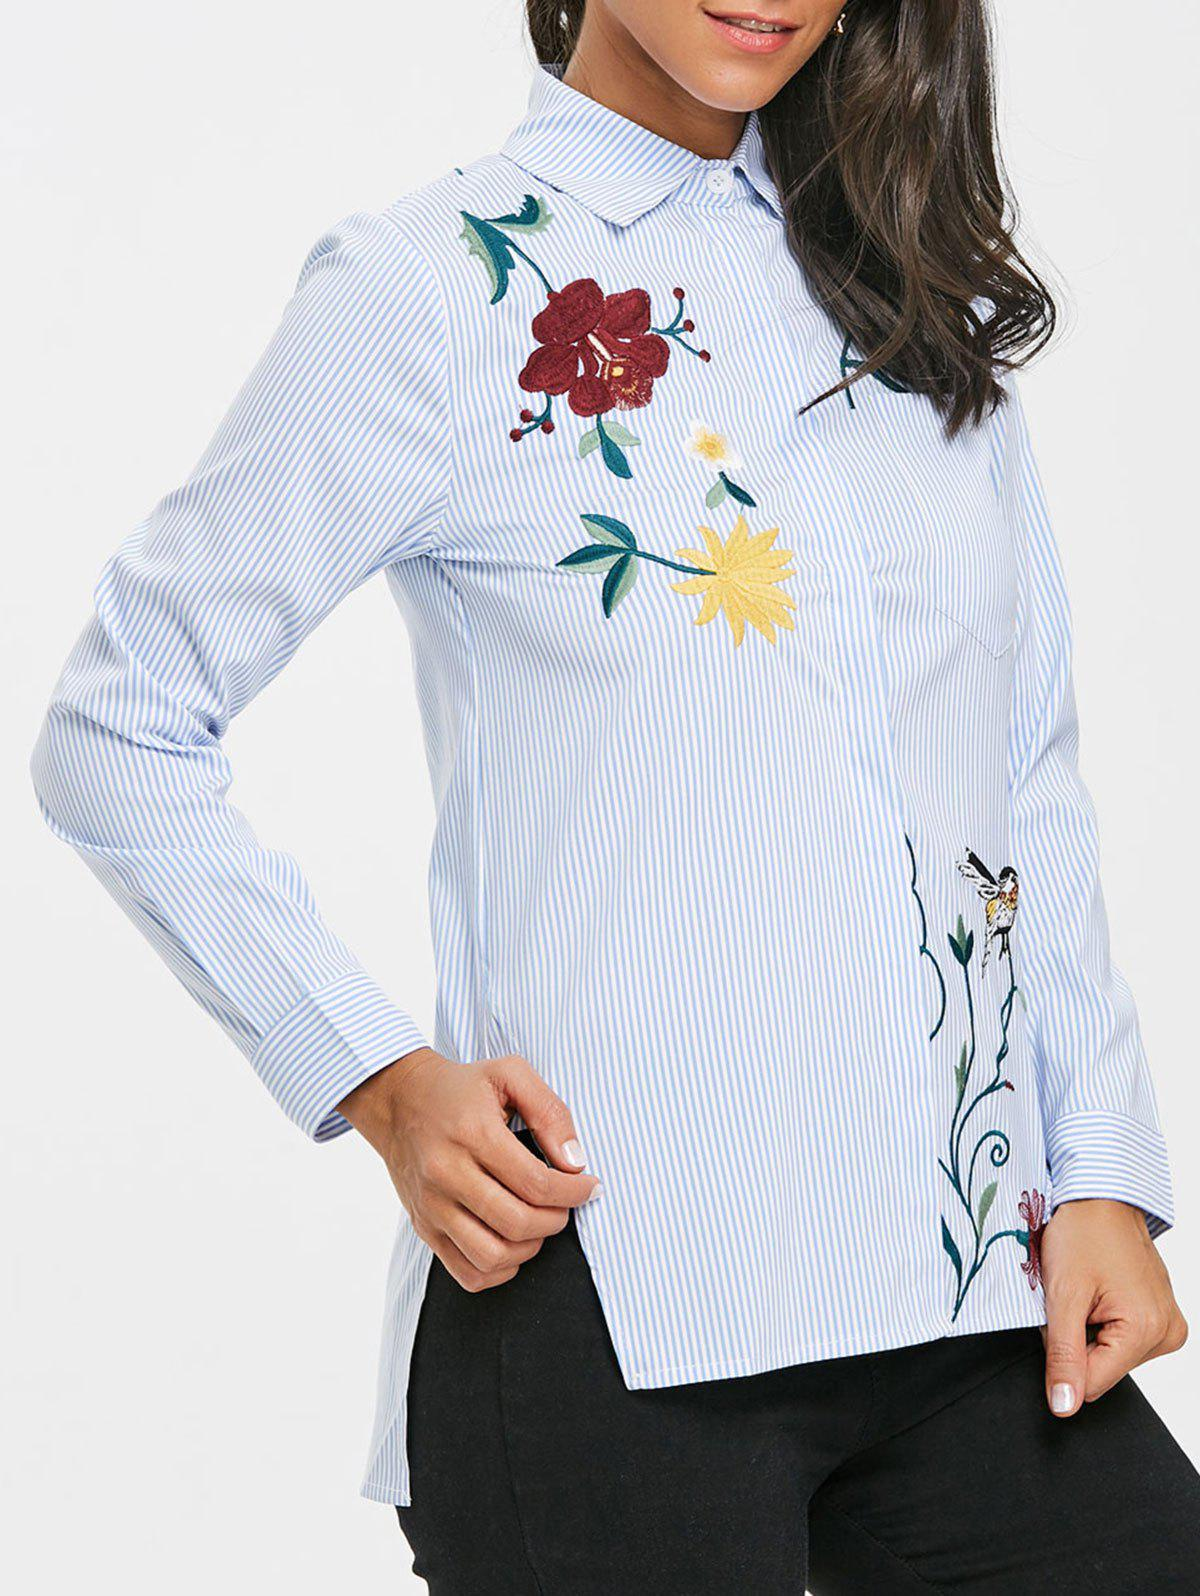 Embroidered High Low Blouse free shipping 10pcs cat7522g page 9